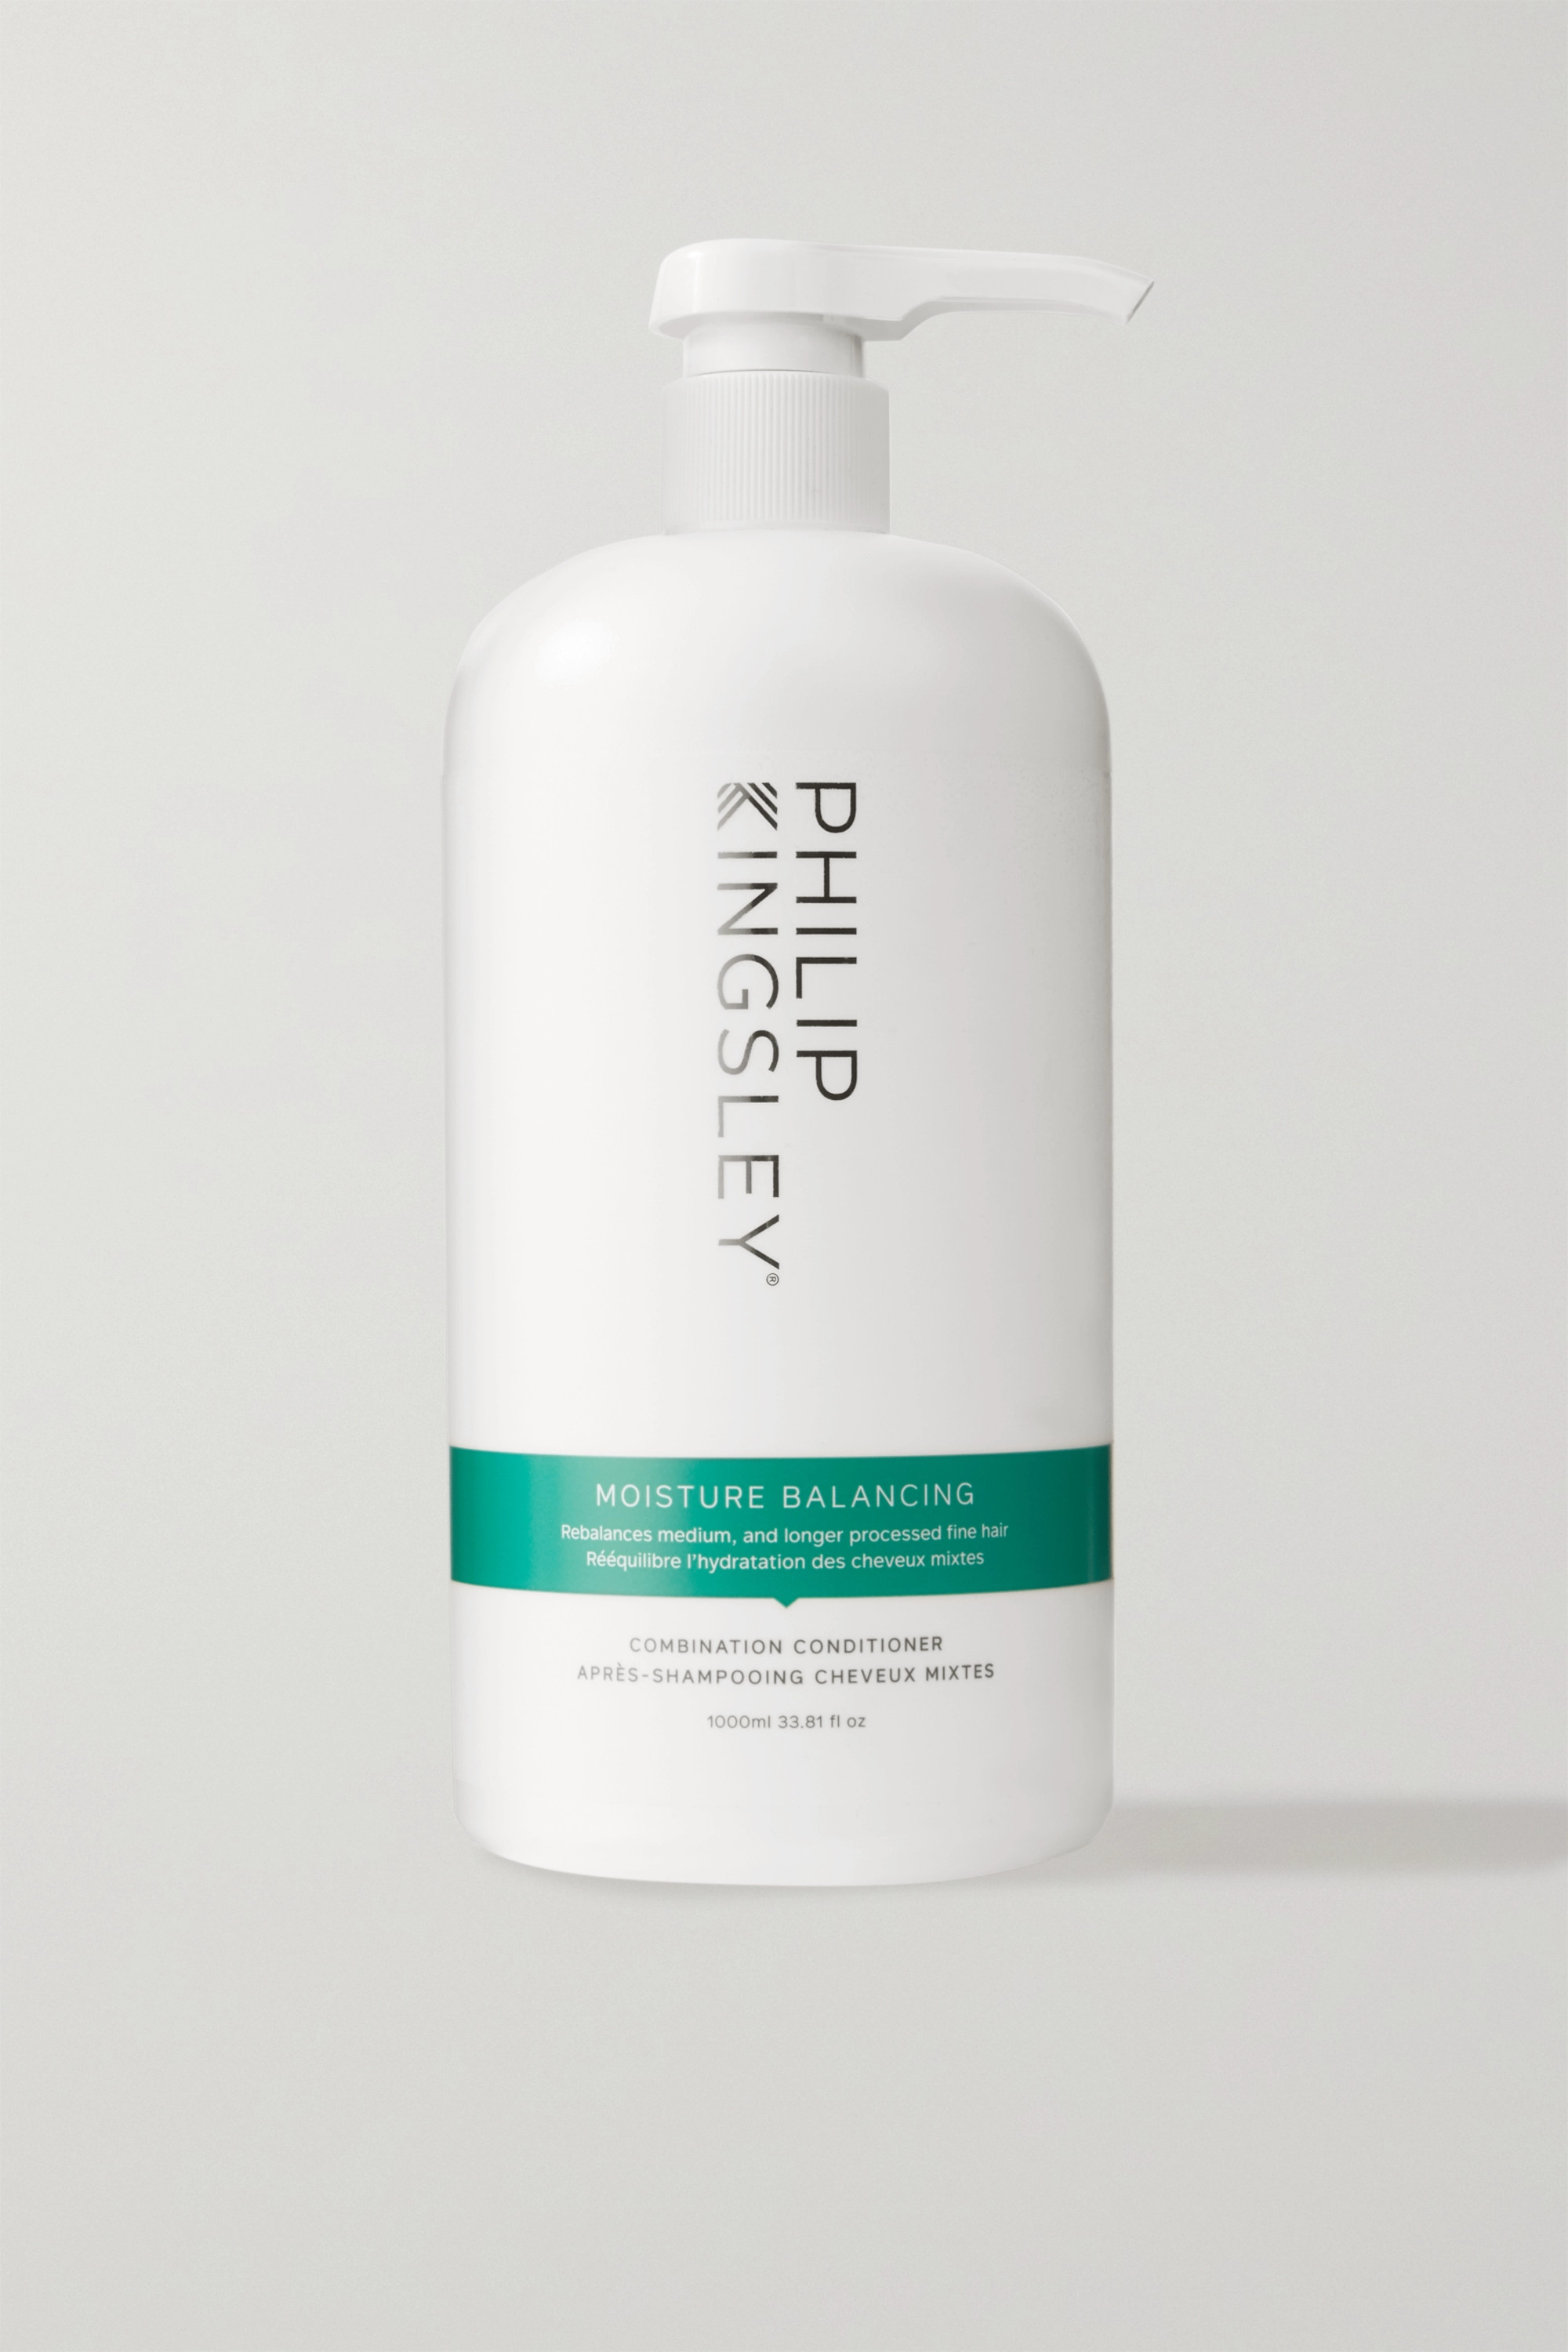 PHILIP KINGSLEY Moisture Balancing Conditioner, 1000ml